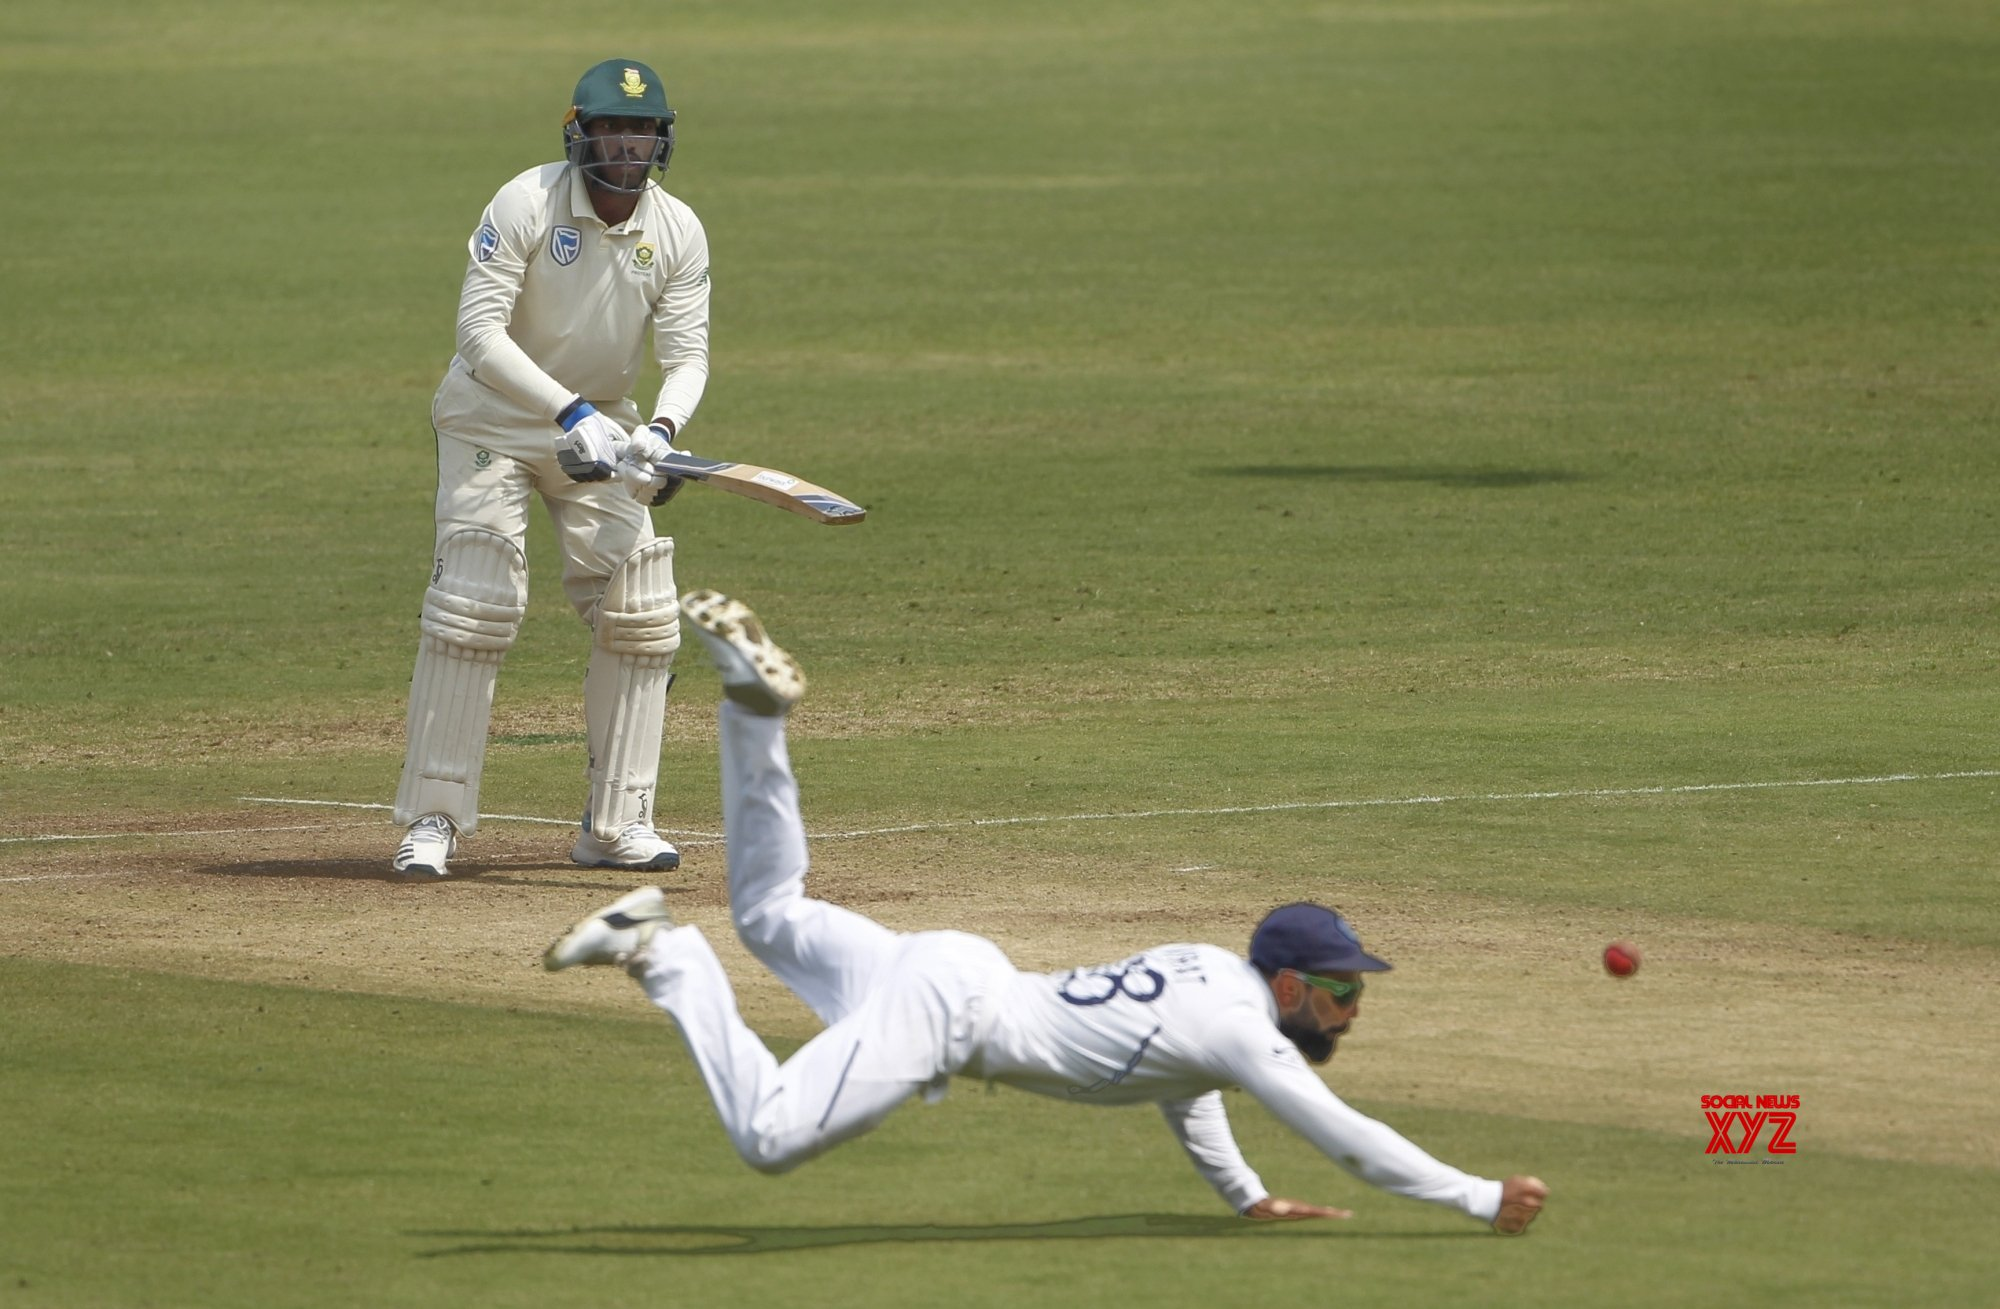 Pune: 2nd Test - India Vs South Africa - Day 3 (Batch - 10) #Gallery